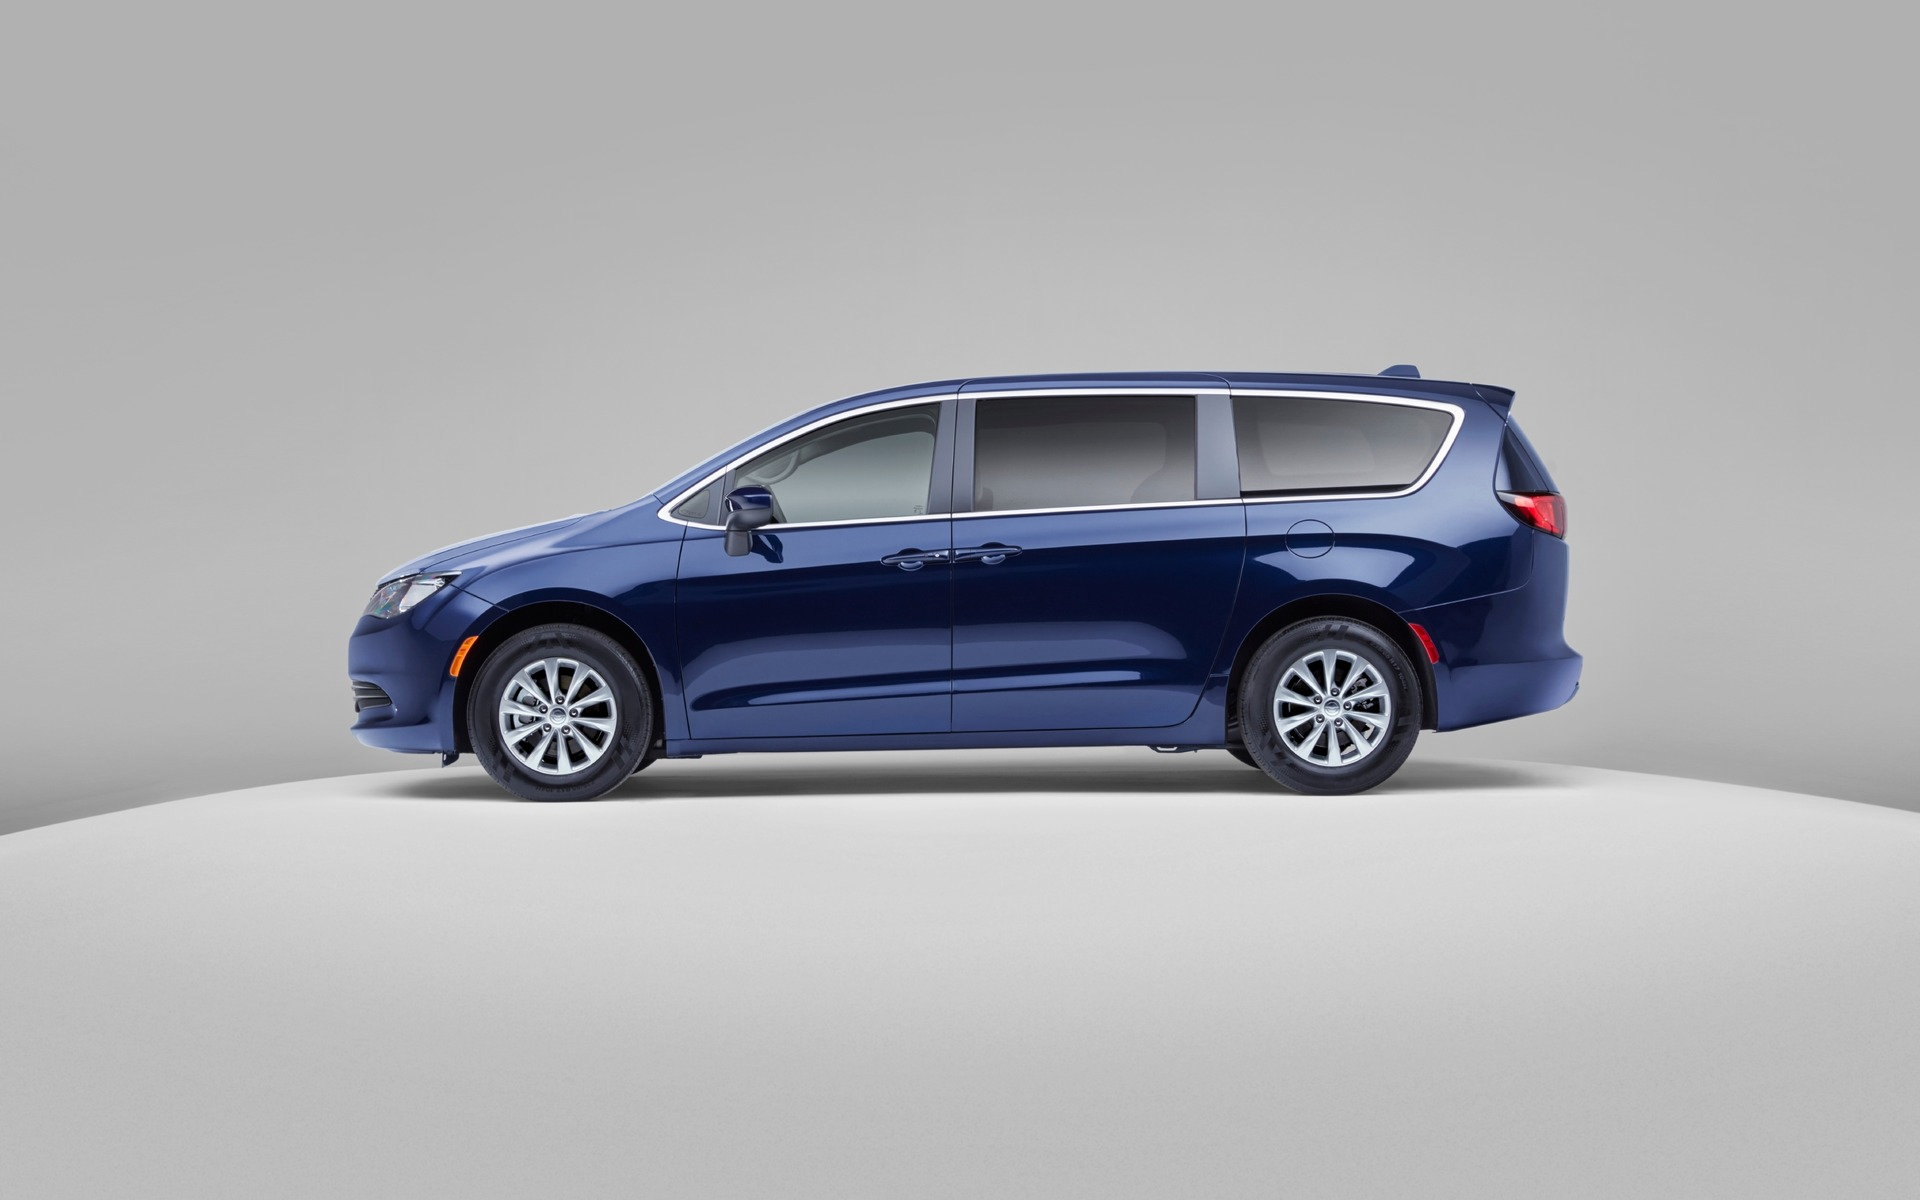 Chrysler Voyager Makes a Comeback for 2020 - The Car Guide